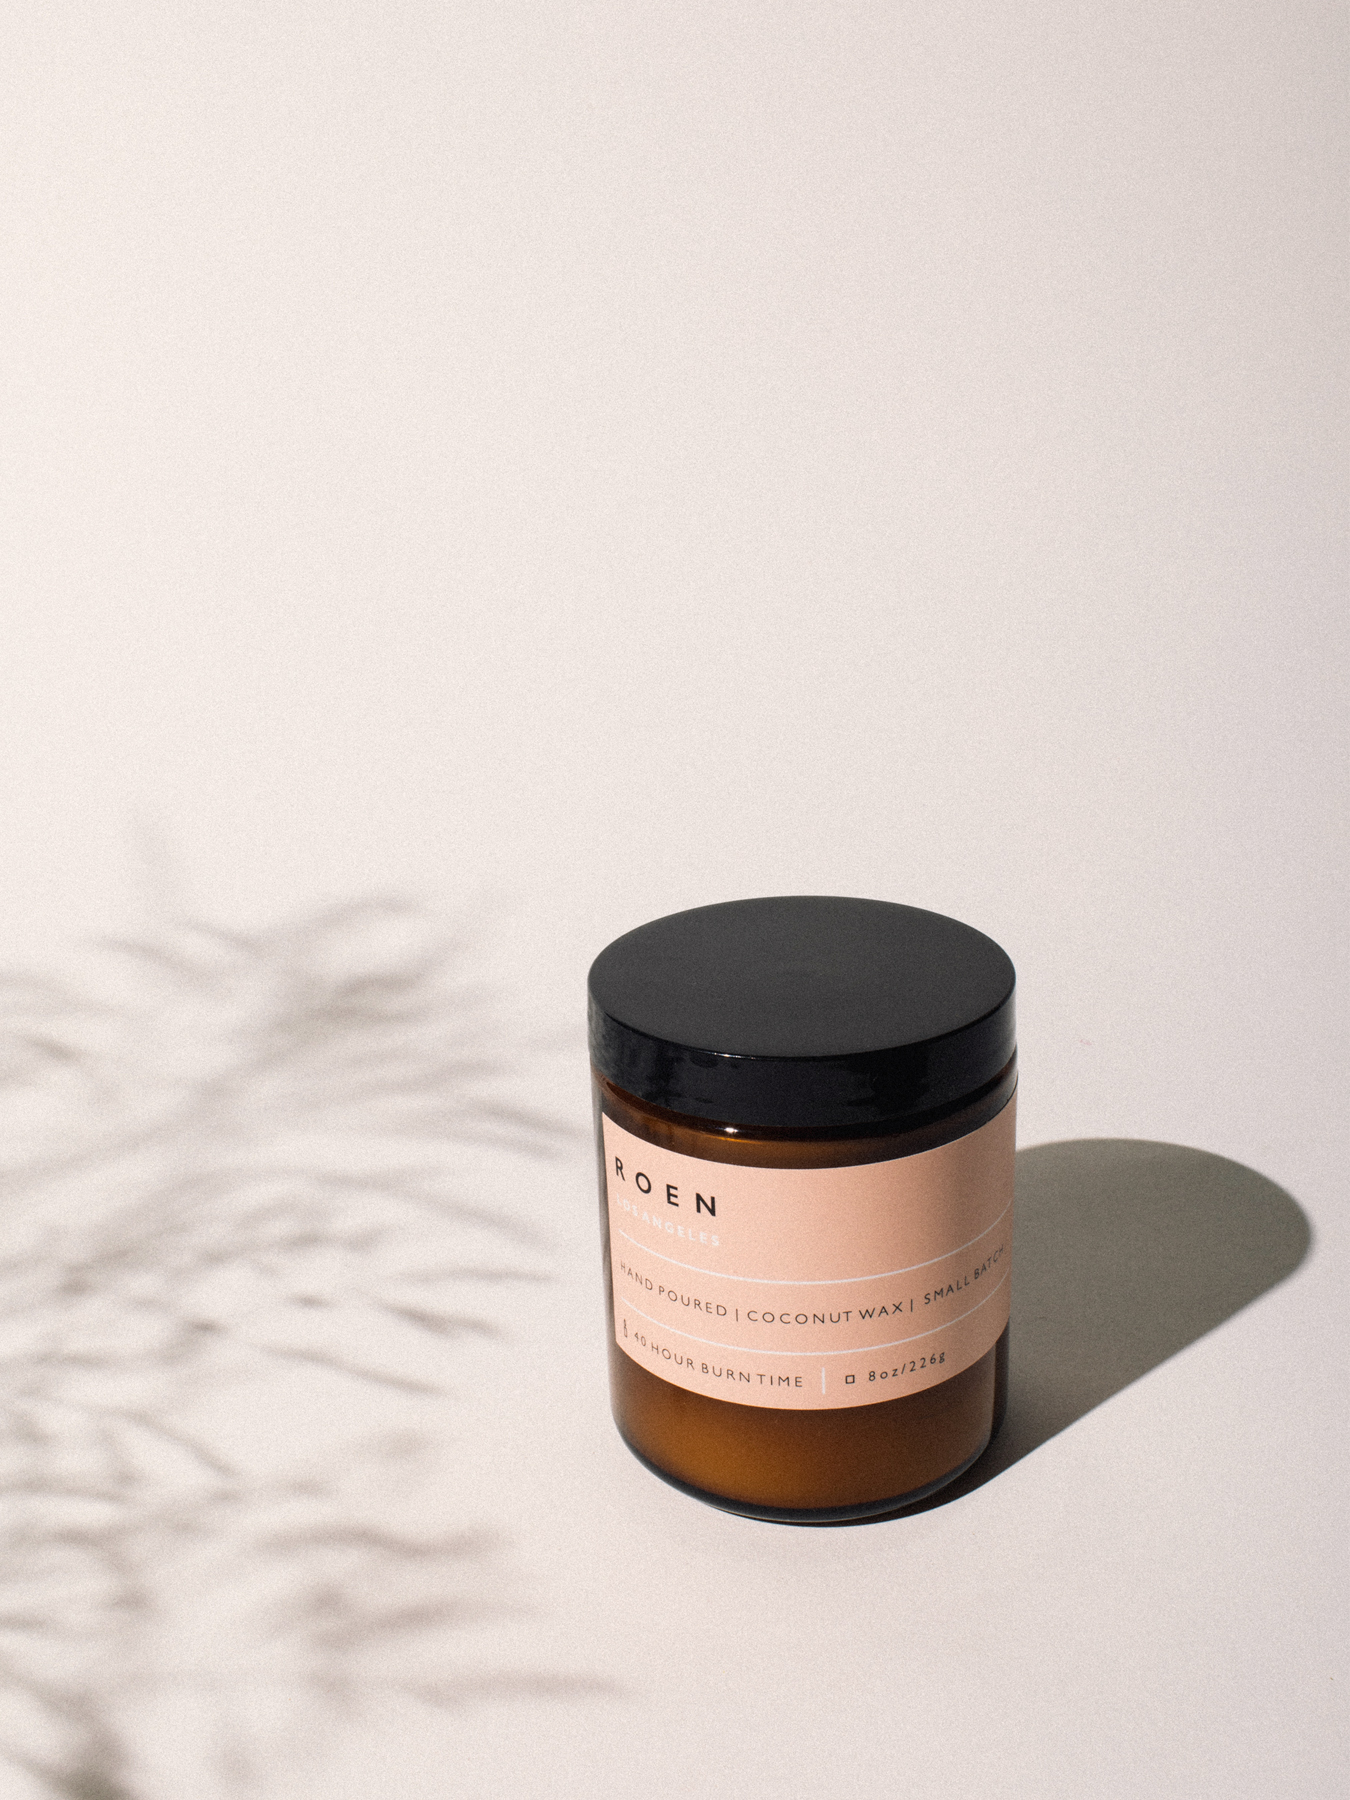 Favorite candle by  Roen